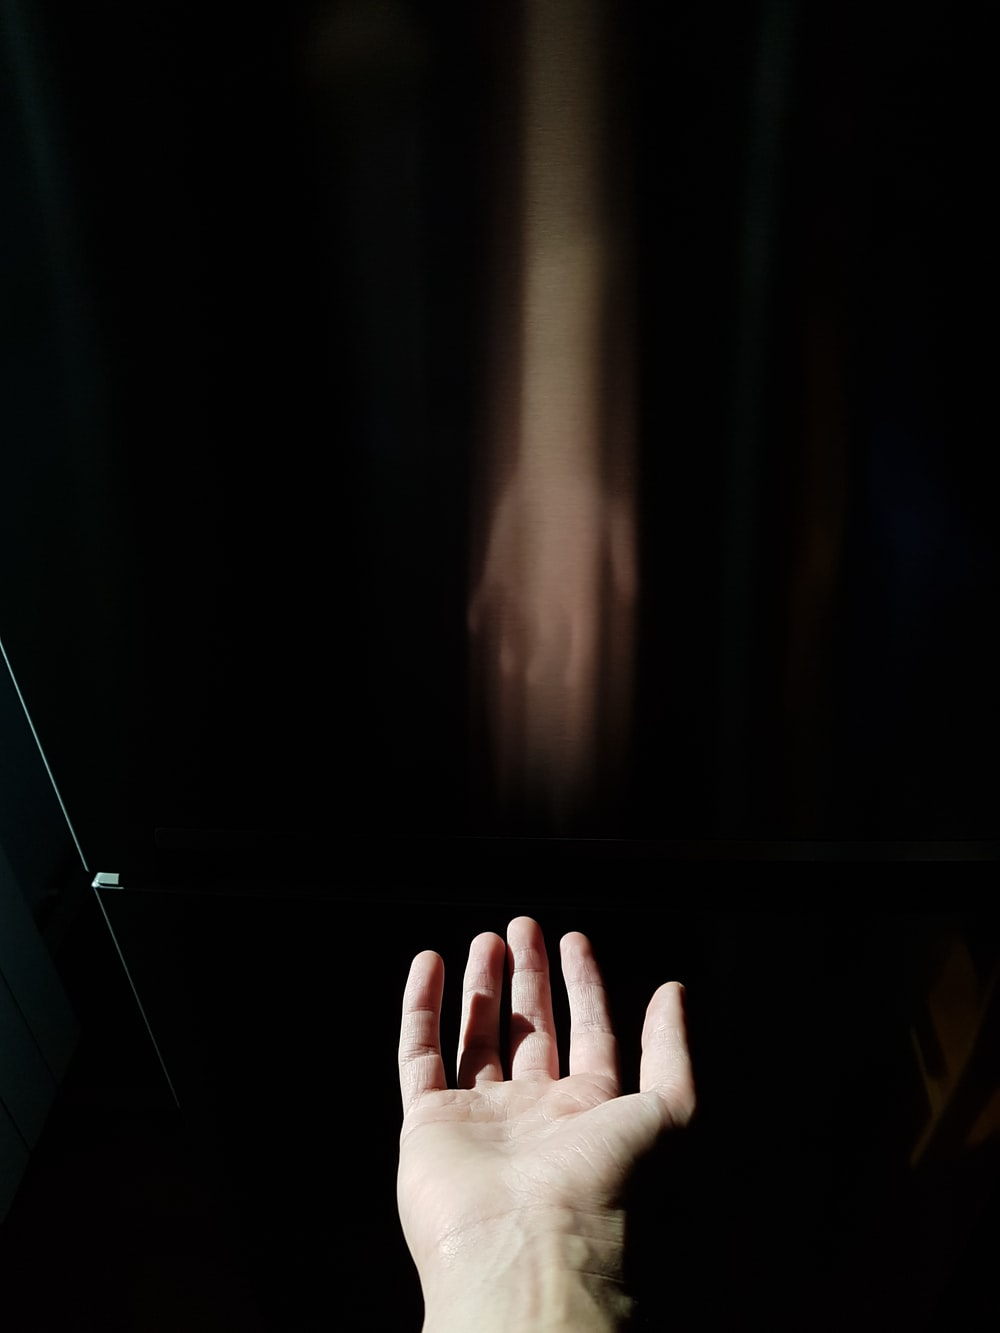 persons hand on black surface